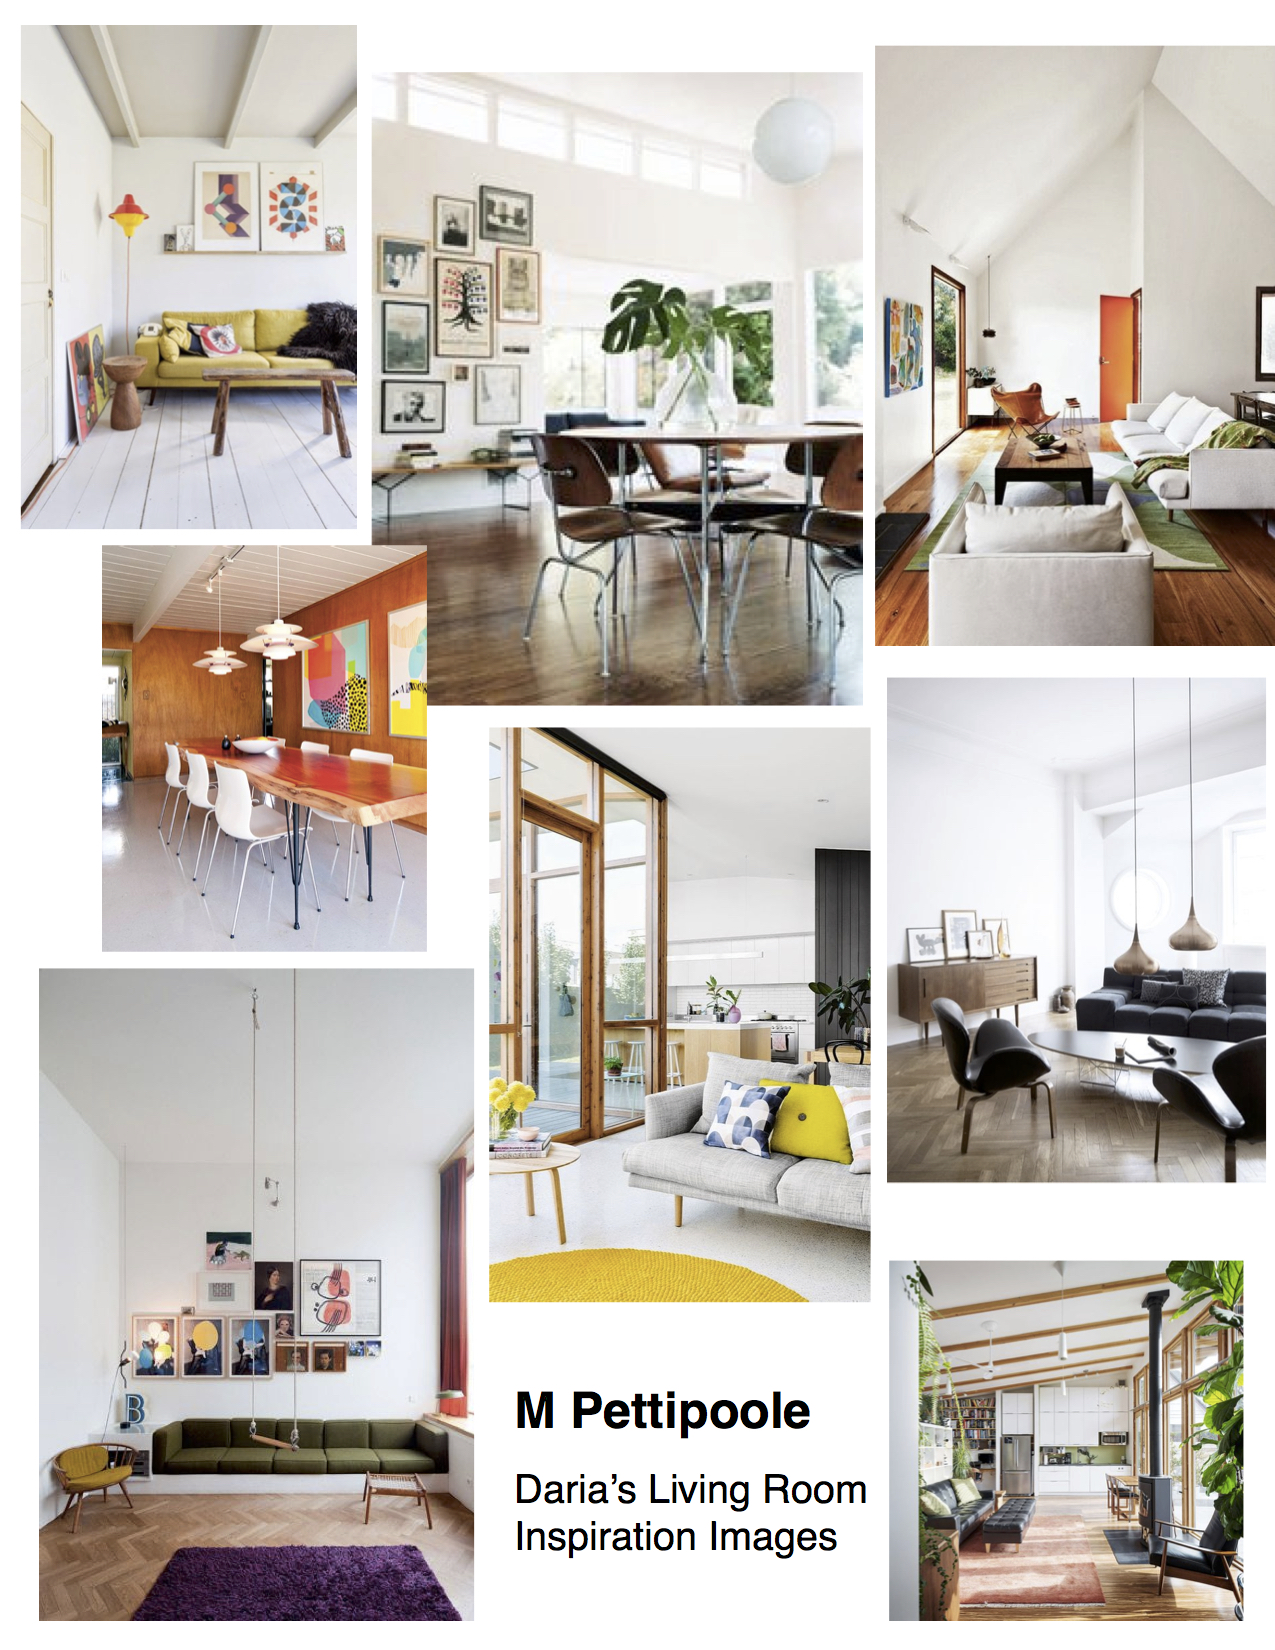 Image Sources:  My Scandinavian Home  |  Designspiration  |  Colorful Homes  |  Redneck Modern  |  My Scandinavian Home  |  Interior Magasinet  |  The New York Times  |  Small House Swoon